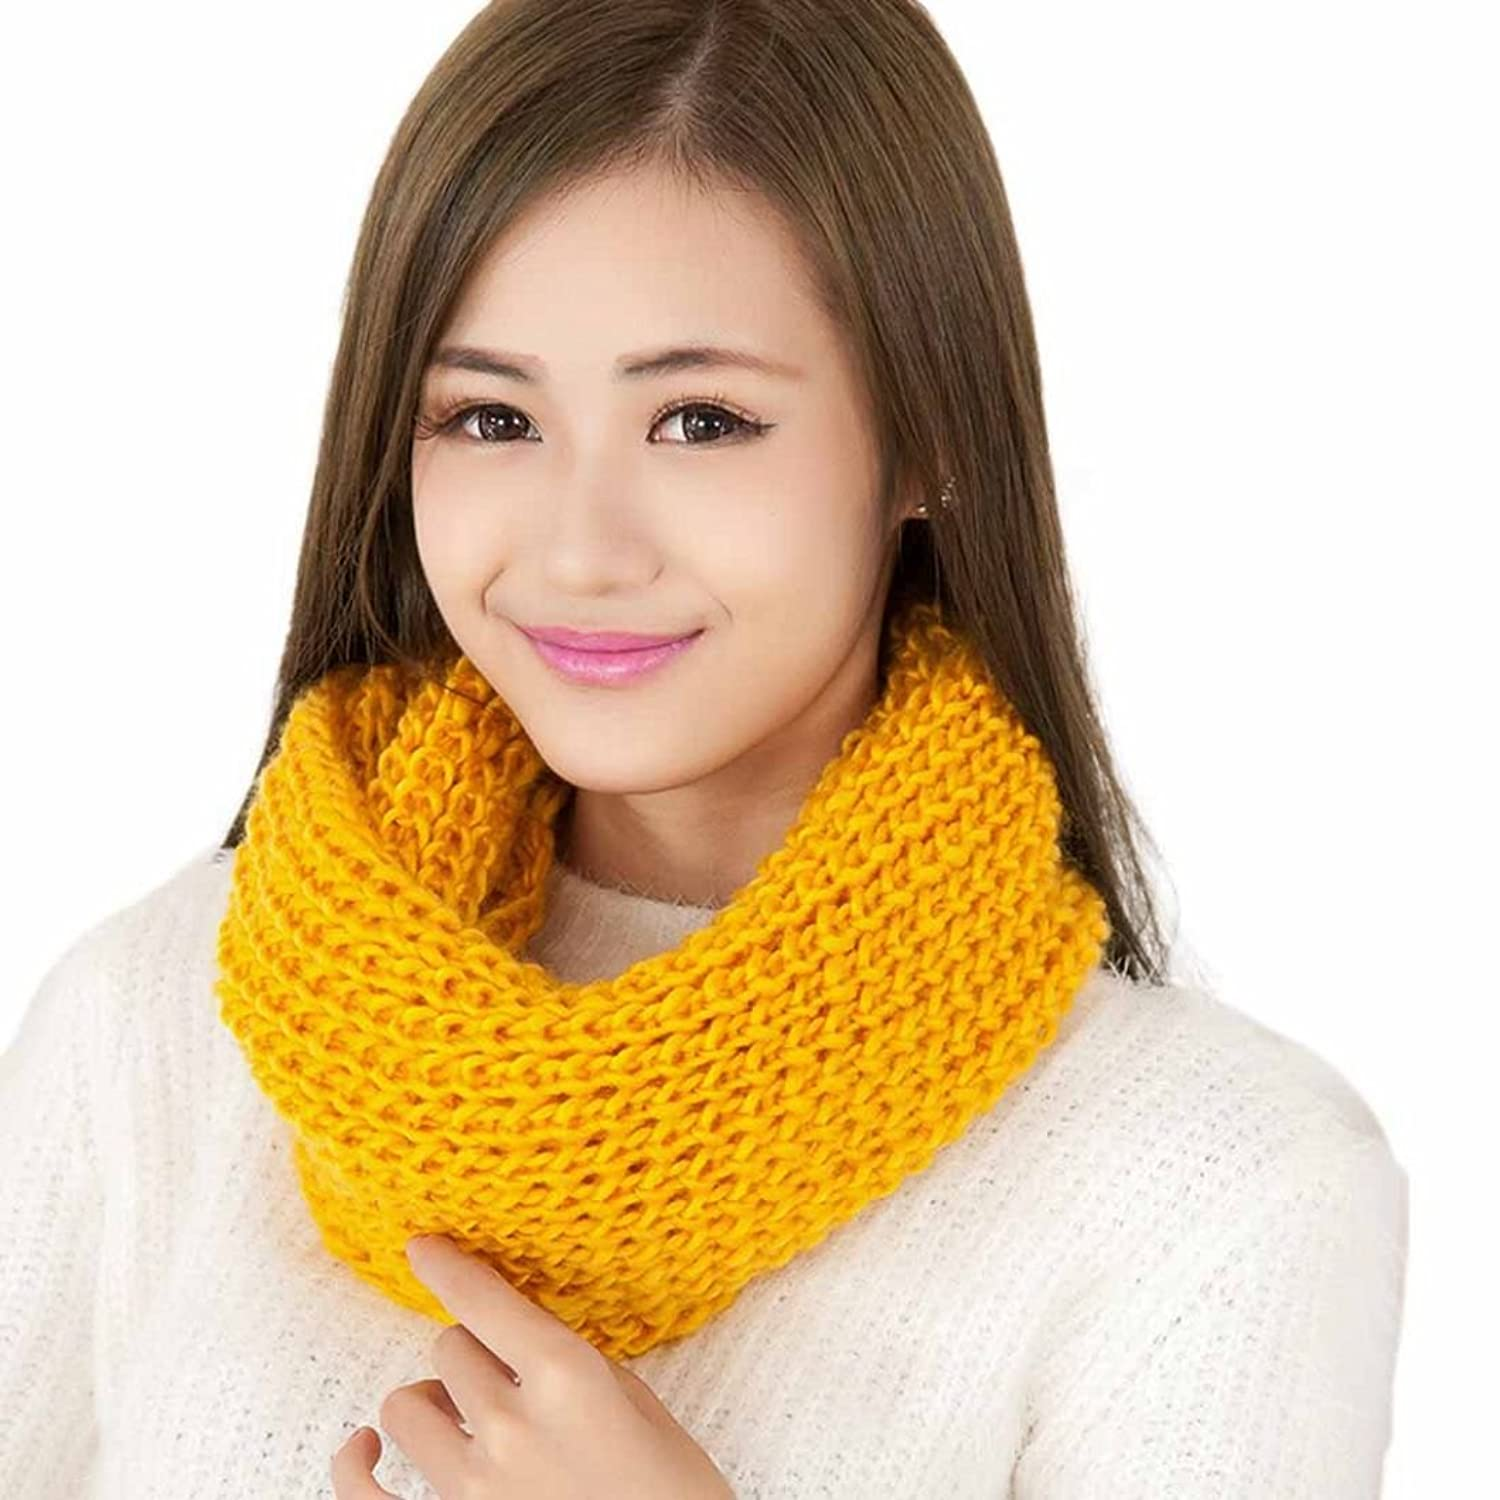 DZT1968(TM) Newest Women Winter Warm Long 2 Circle Cable Knit Cowl Neck Scarf Shawl (YL)